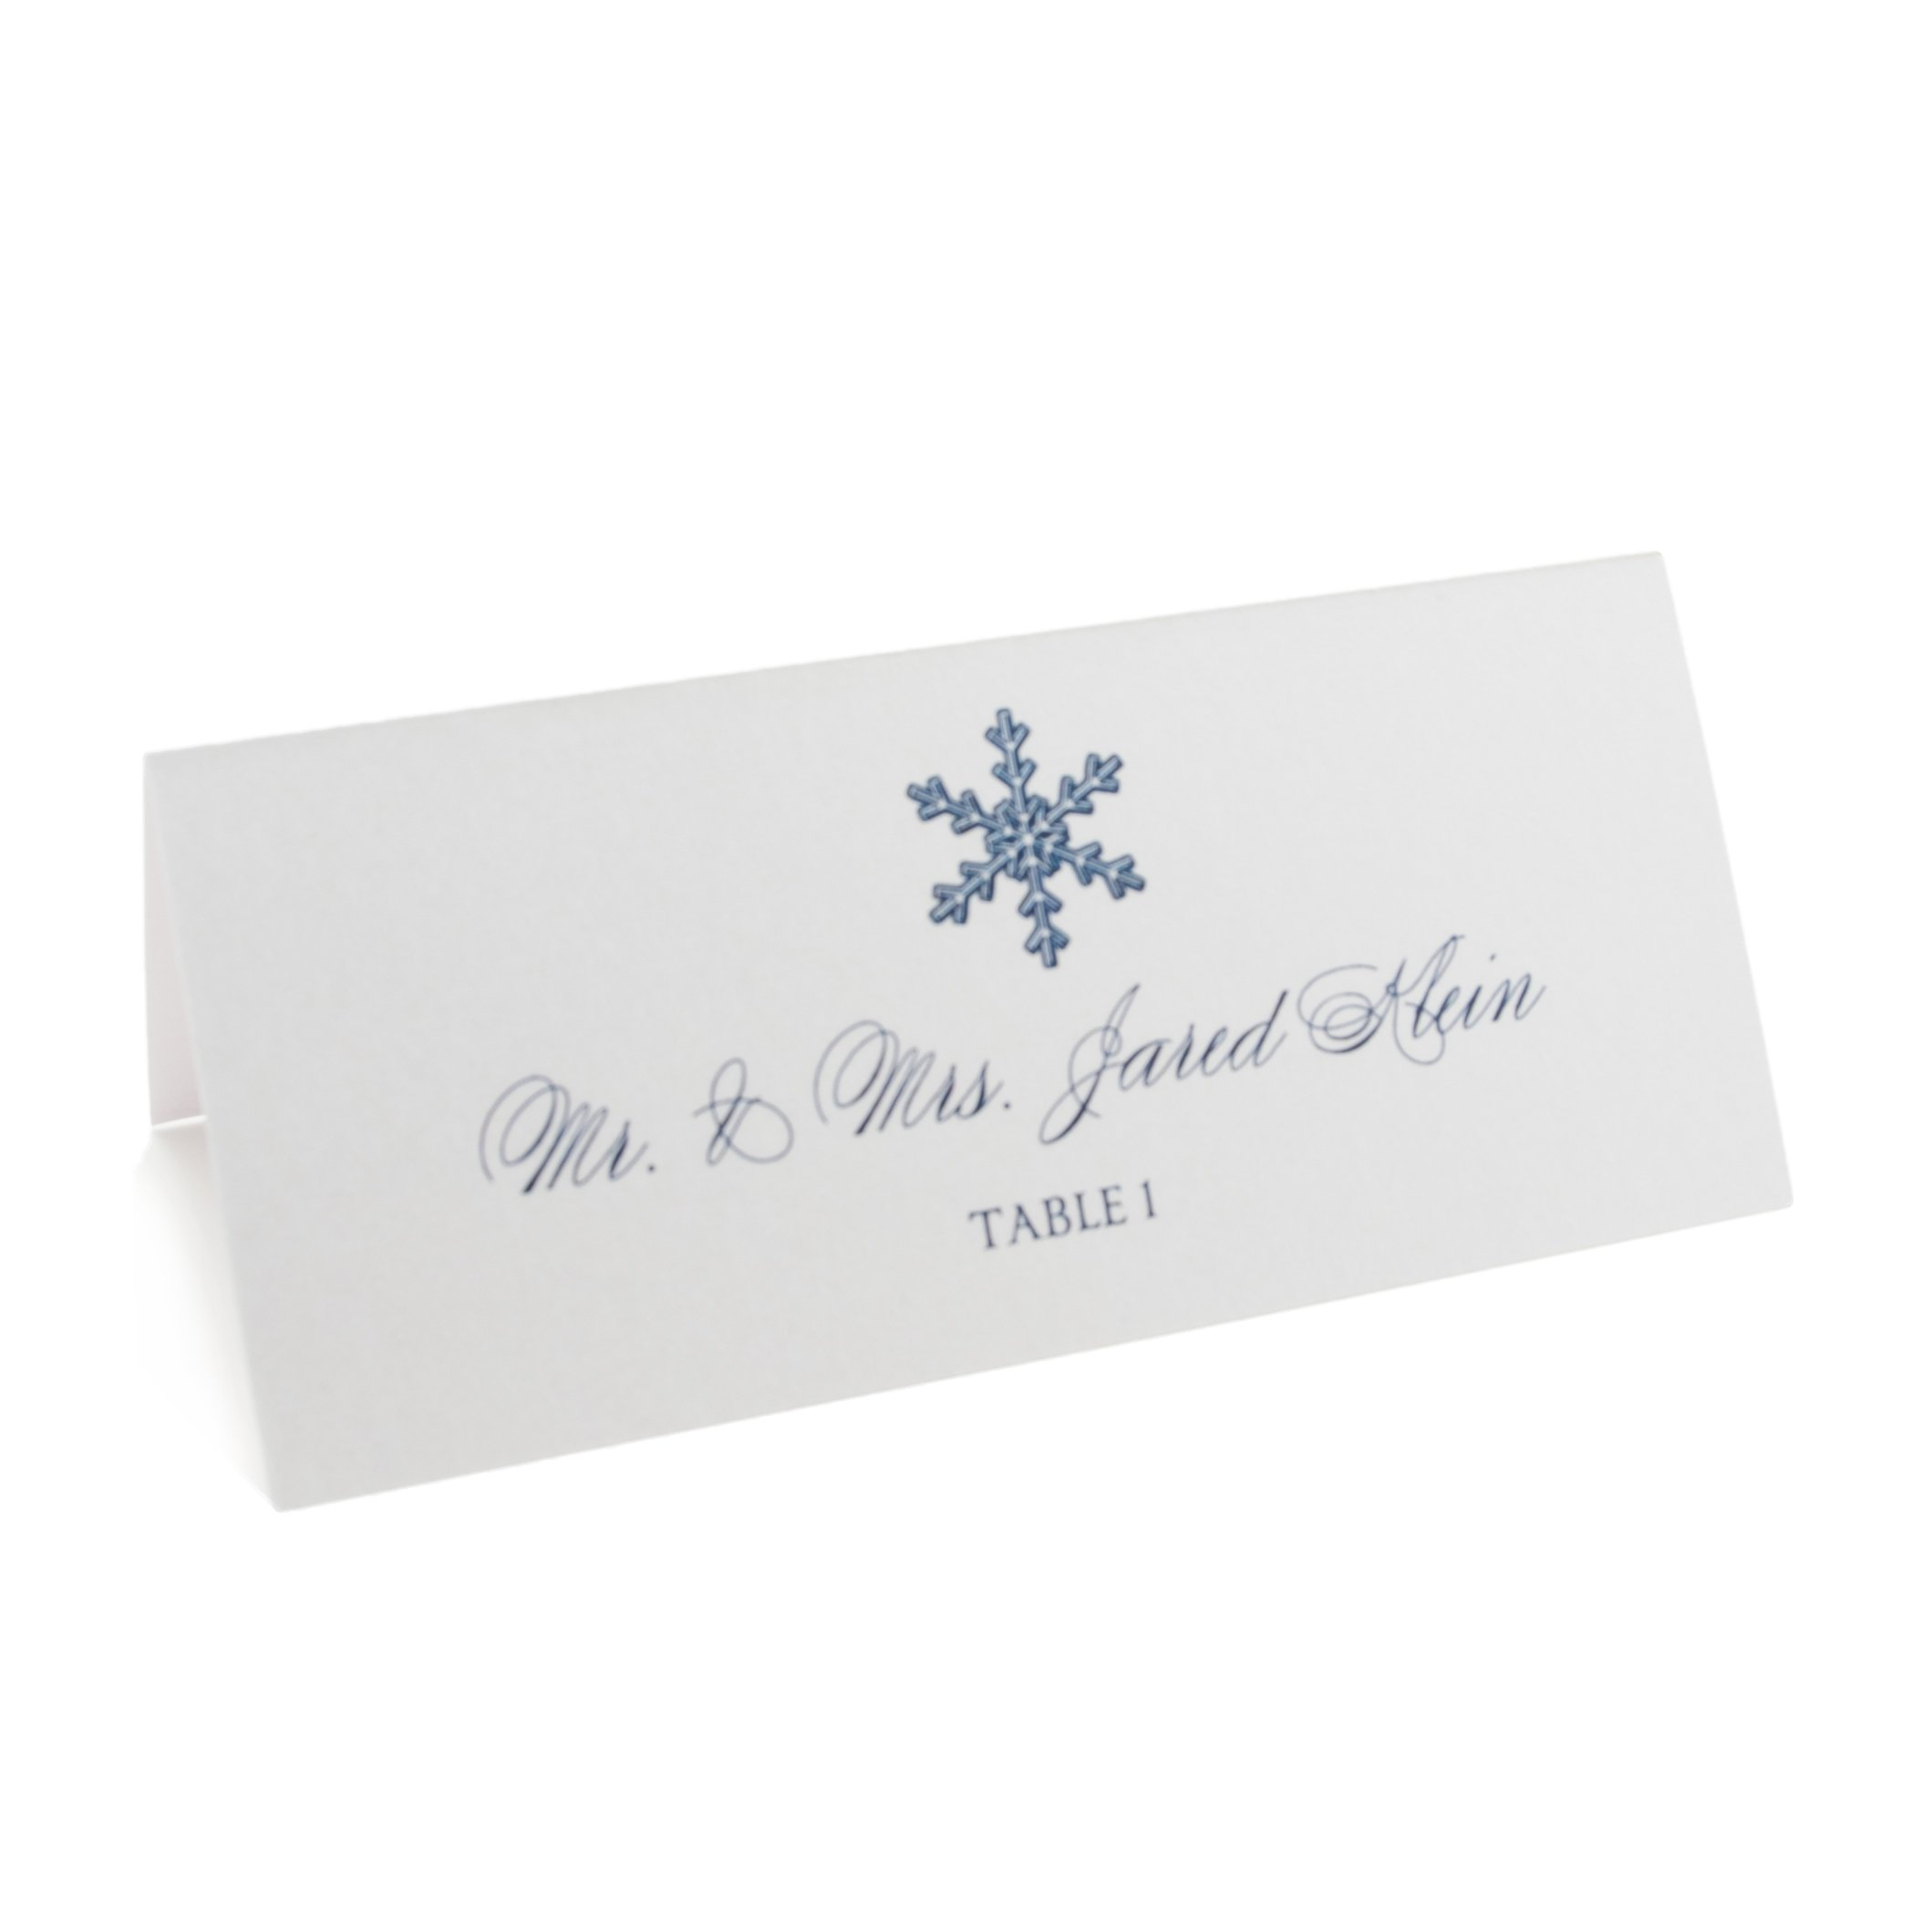 Snowflake Place Cards, Assorted Designs, Pearl White, Set of 375 by Documents and Designs